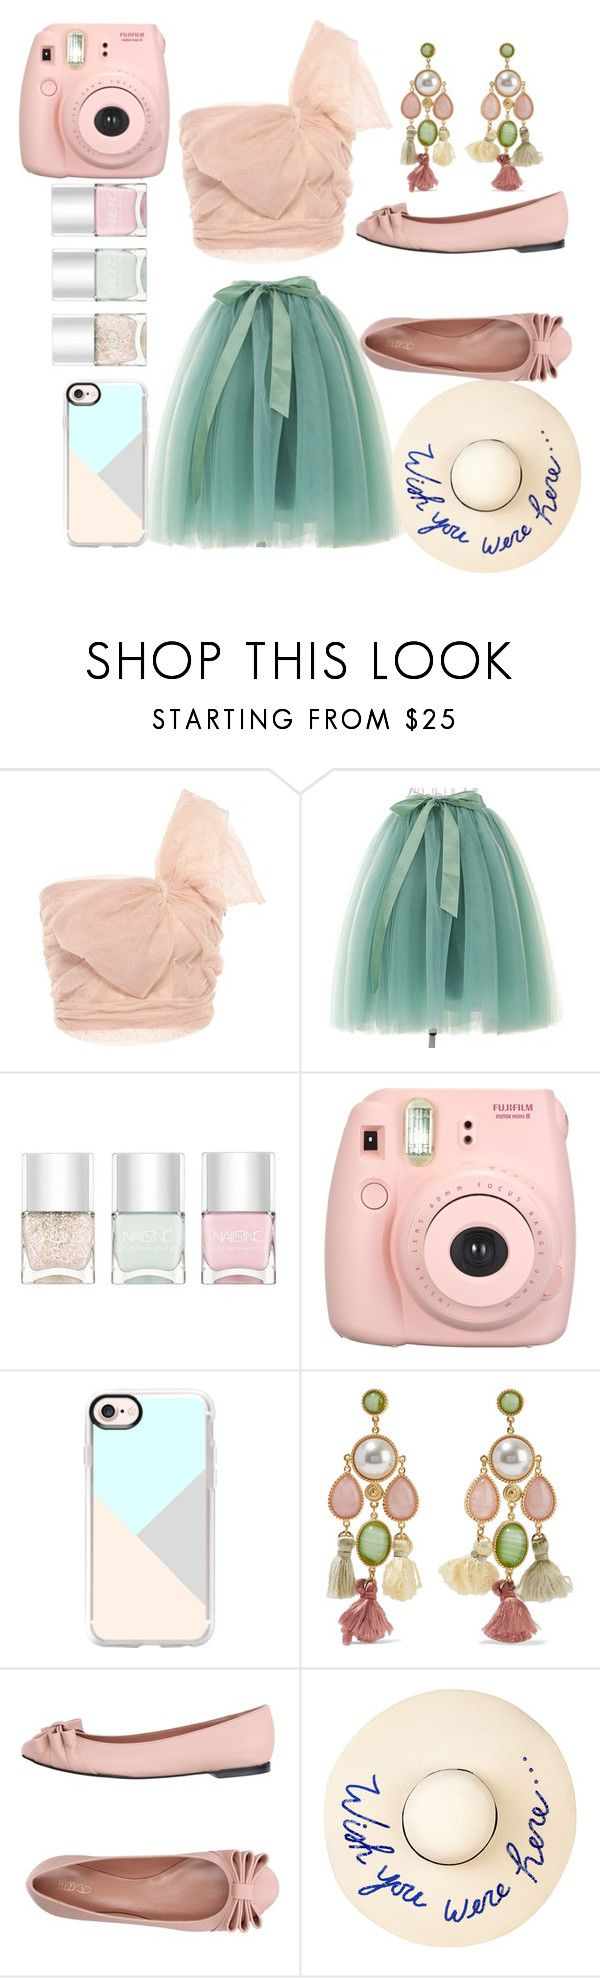 """""""Summer Dinner Outfit"""" by dramagirl4 ❤ liked on Polyvore featuring RED Valentino, Nails Inc., Fujifilm, Casetify, Ben-Amun and Eugenia Kim"""